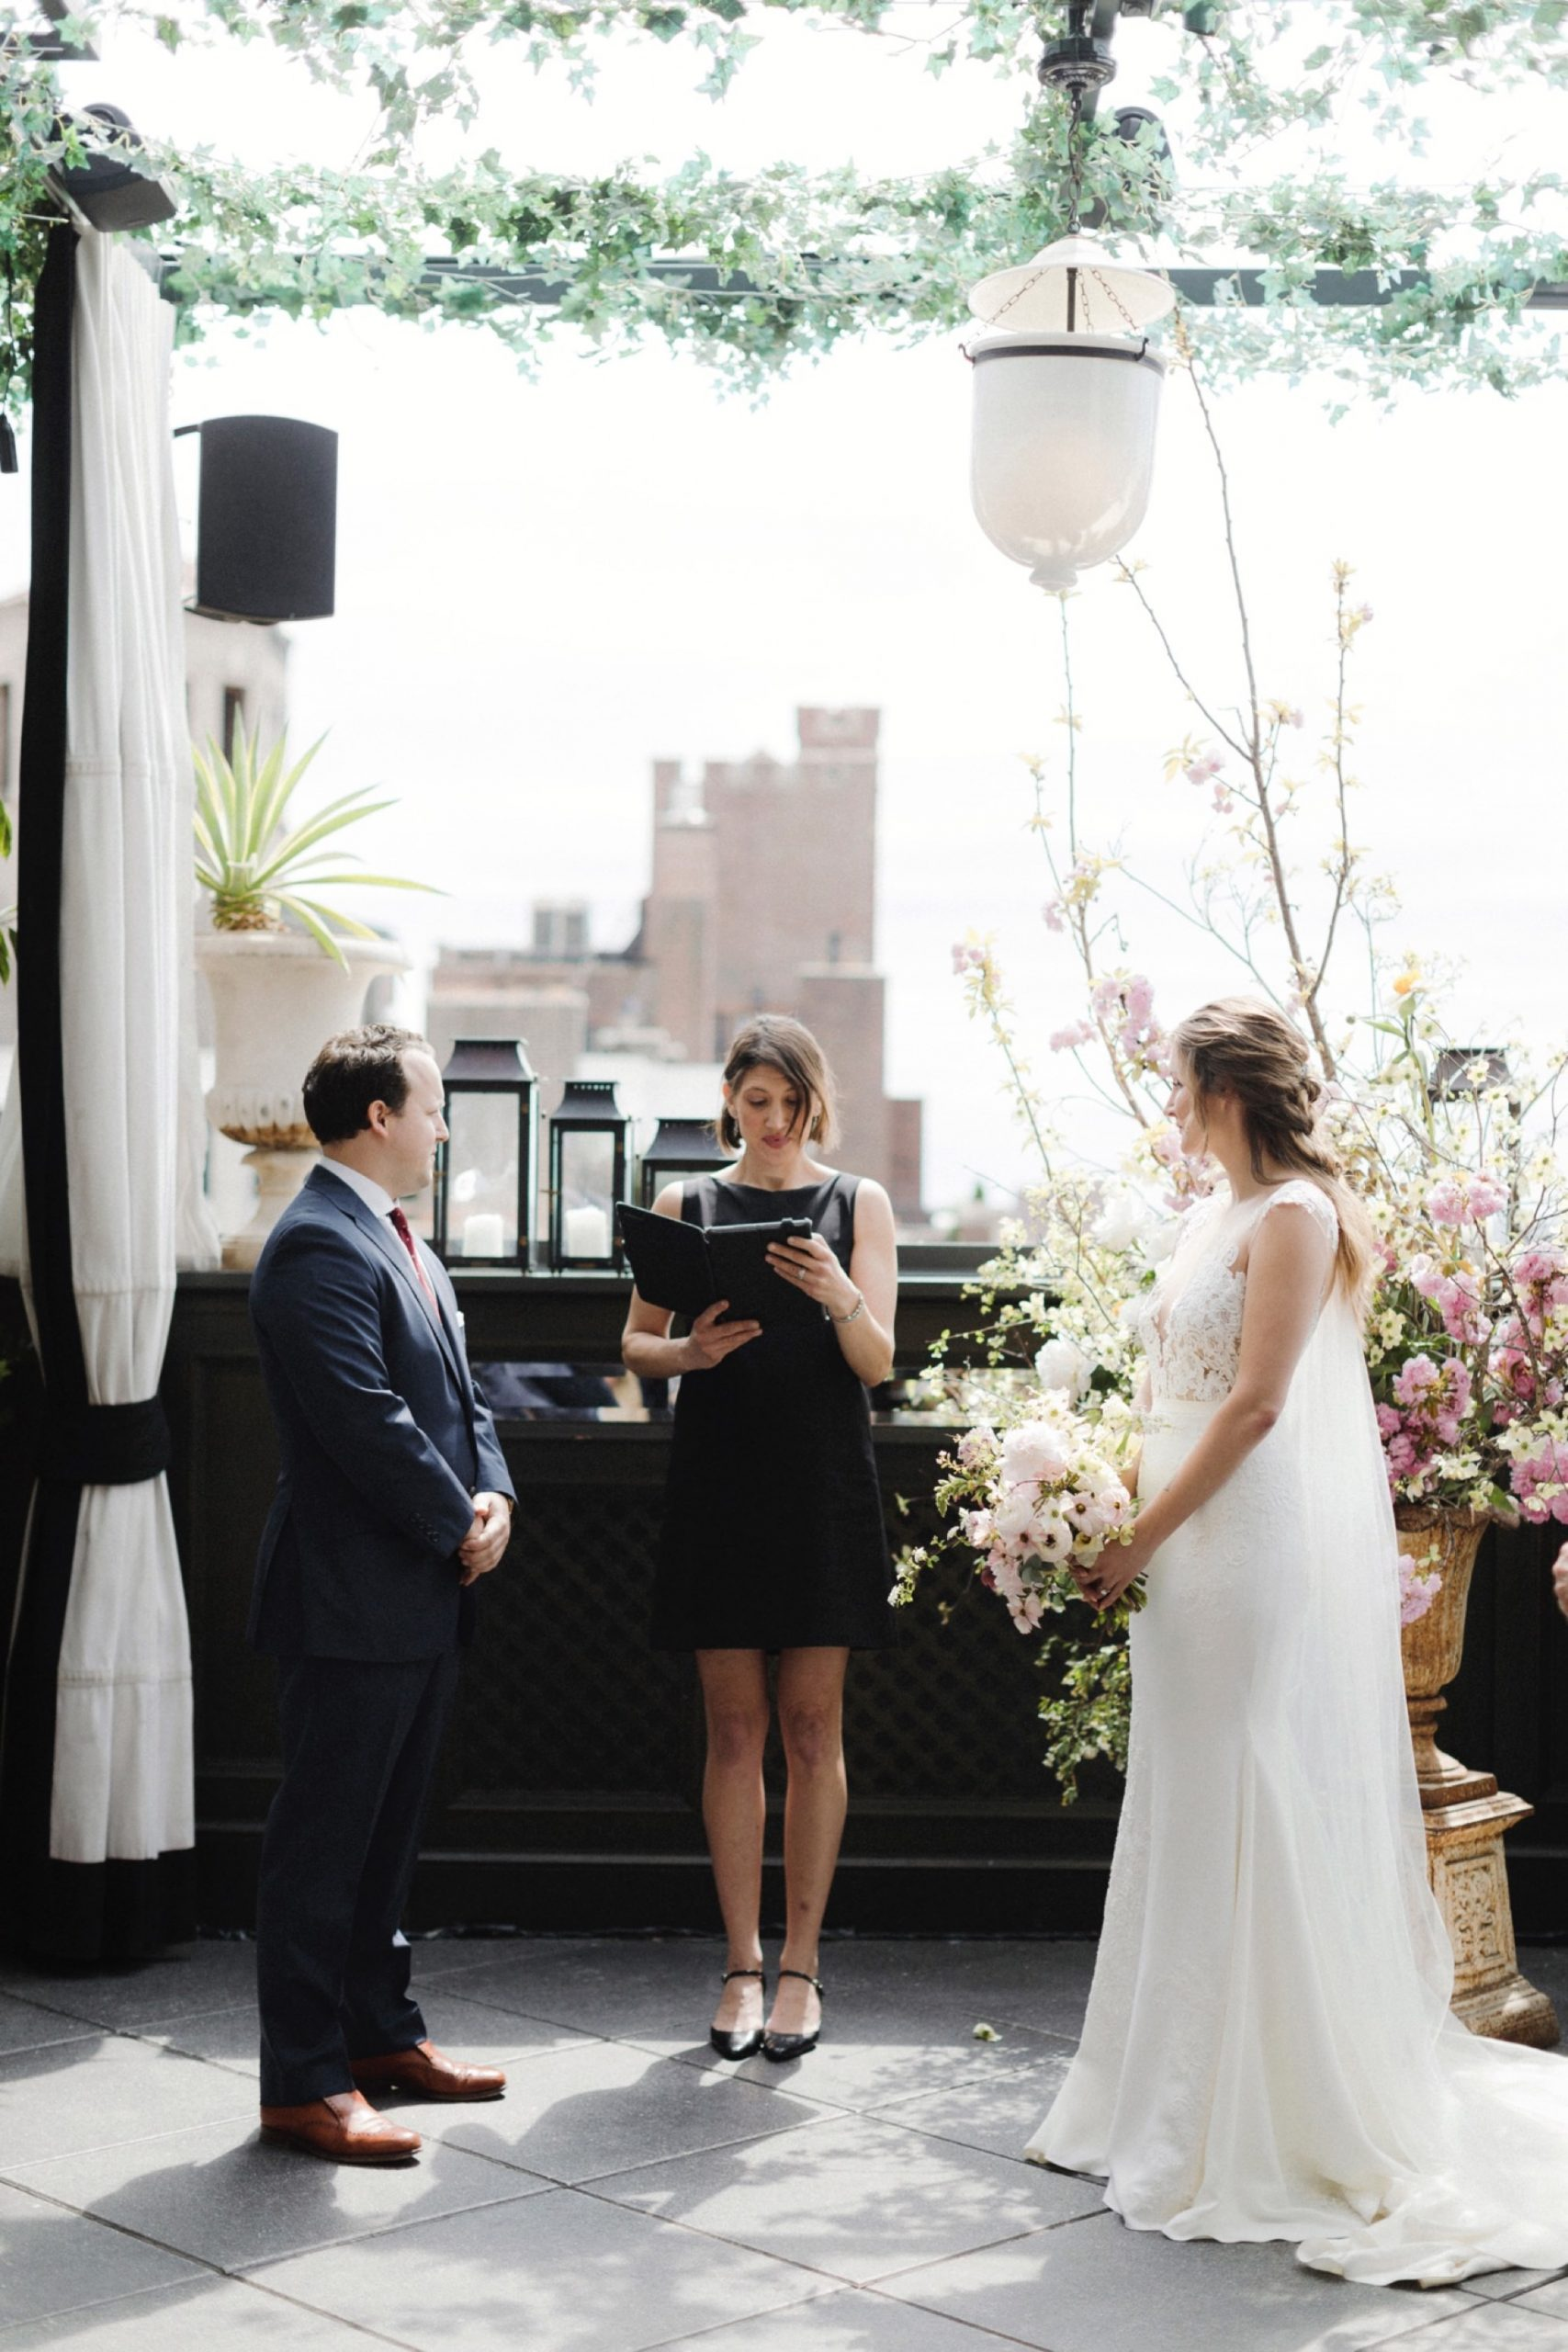 Wedding ceremony at ceremony at Gramercy terrace rooftop at ceremony at Gramercy Park Hotel